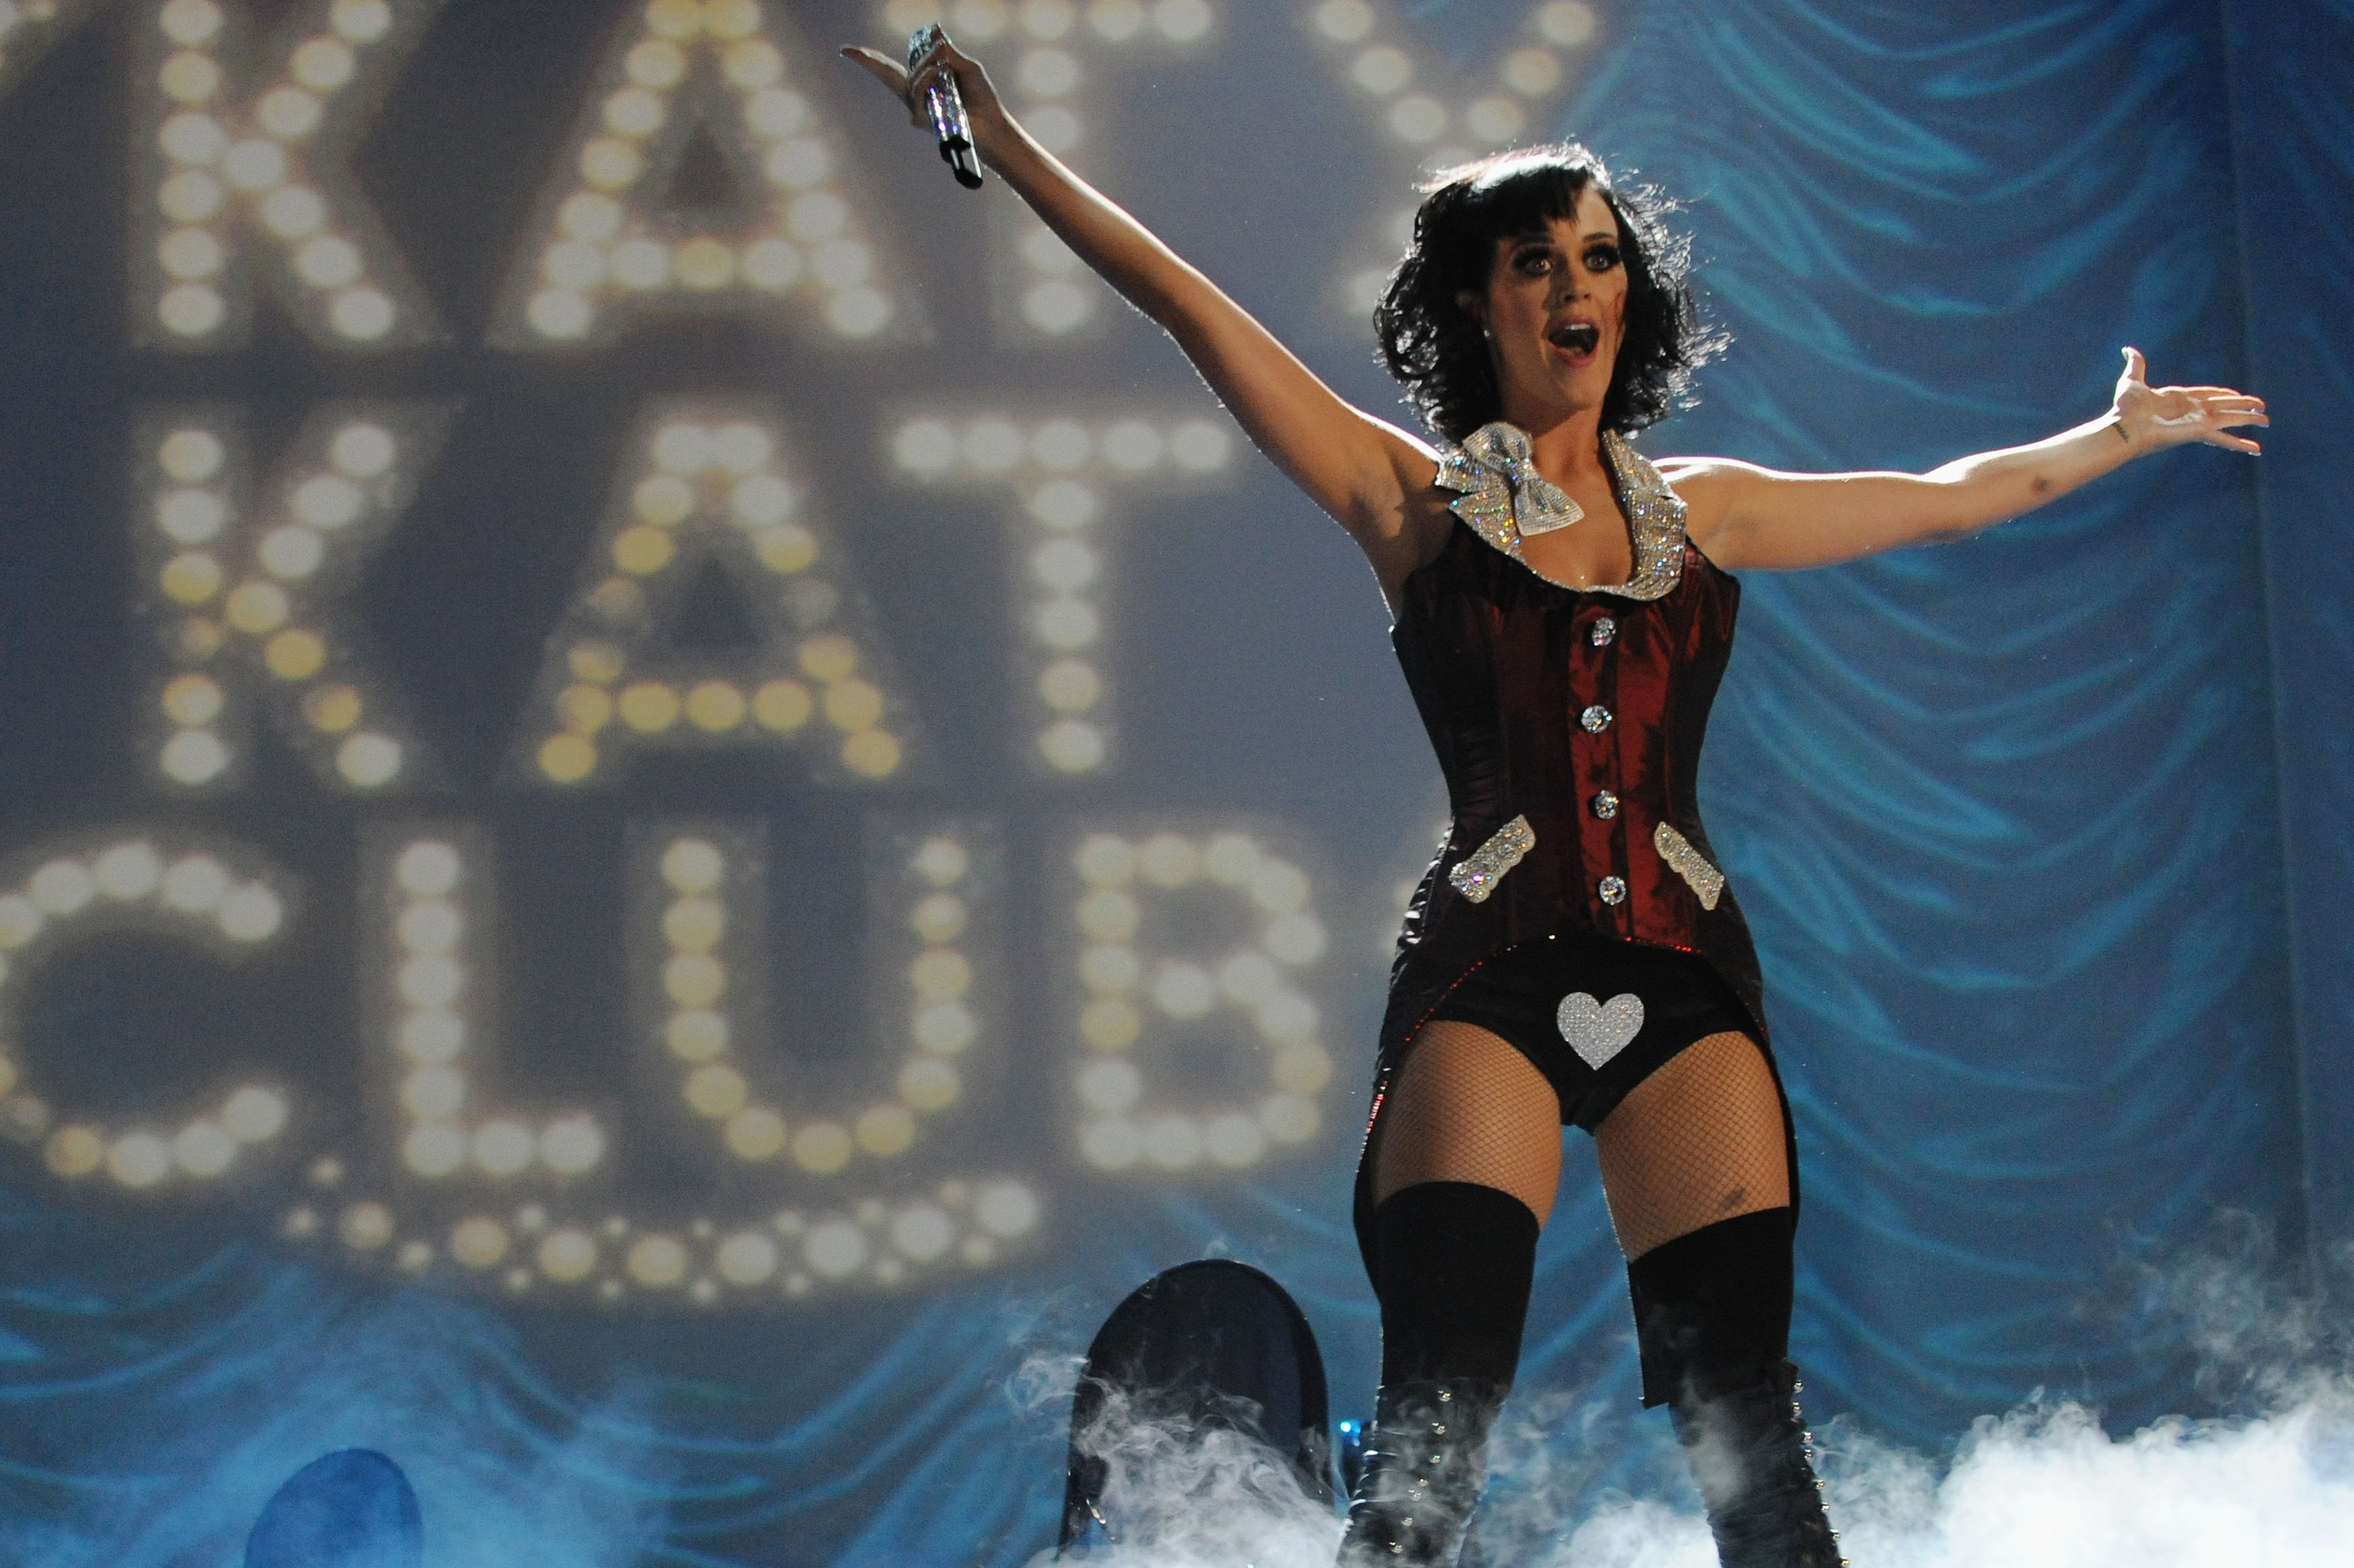 Katy-Perry-at-2009-MTV-Europe-Music-Awards